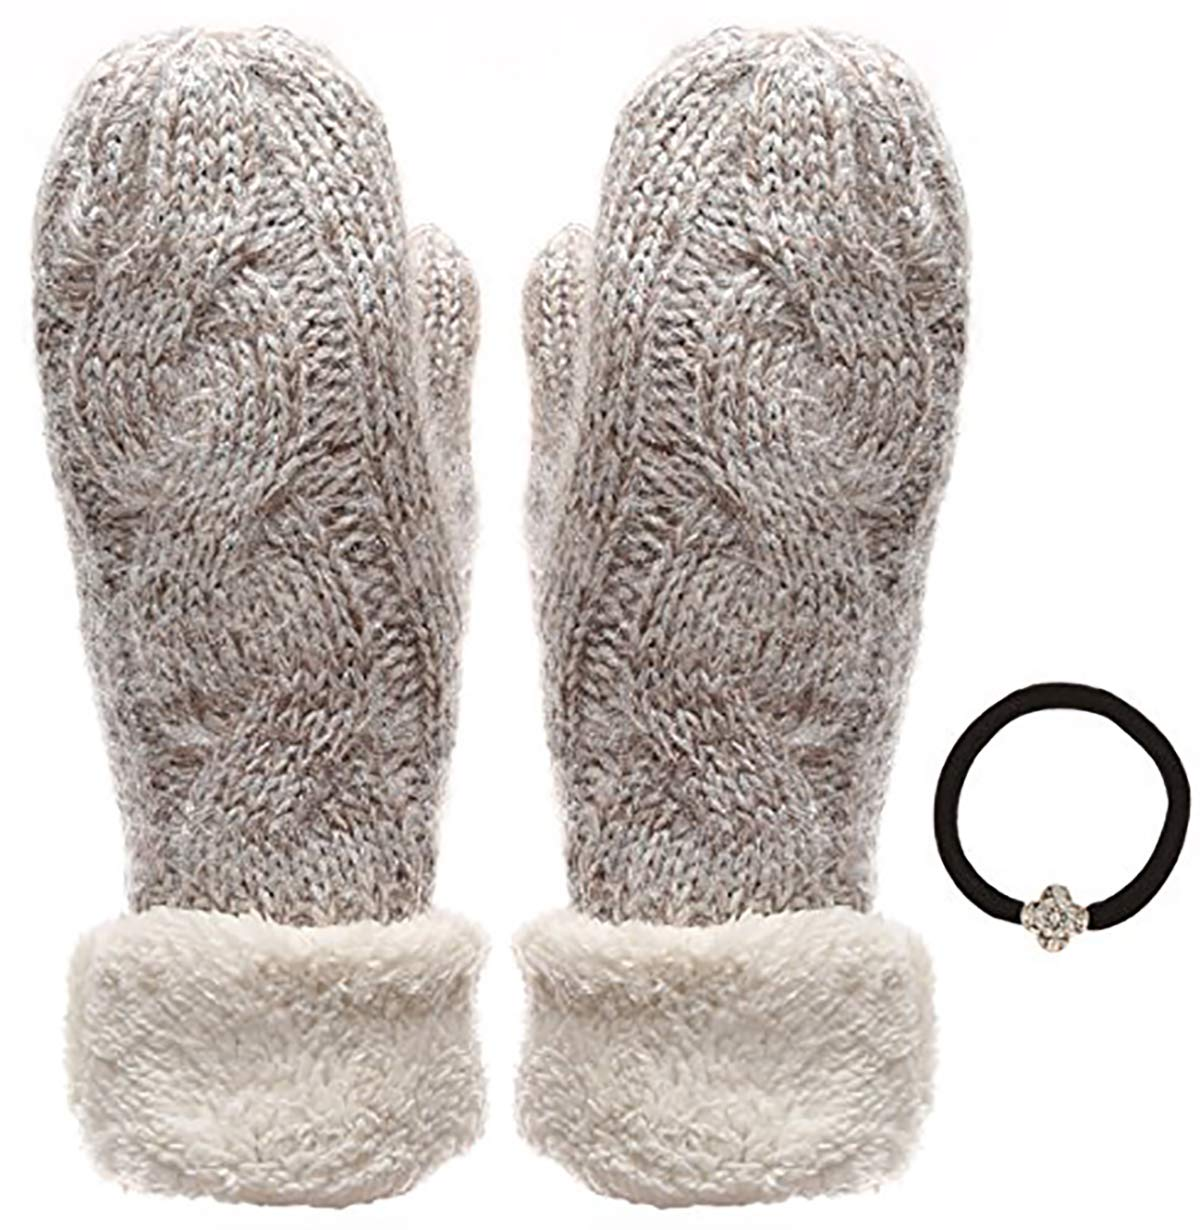 Women's Winter Warm Blend Cable Knitted Mitten Plush Lining Gloves with Hair Tie.(550, Ivory) by J Fashion Accessories